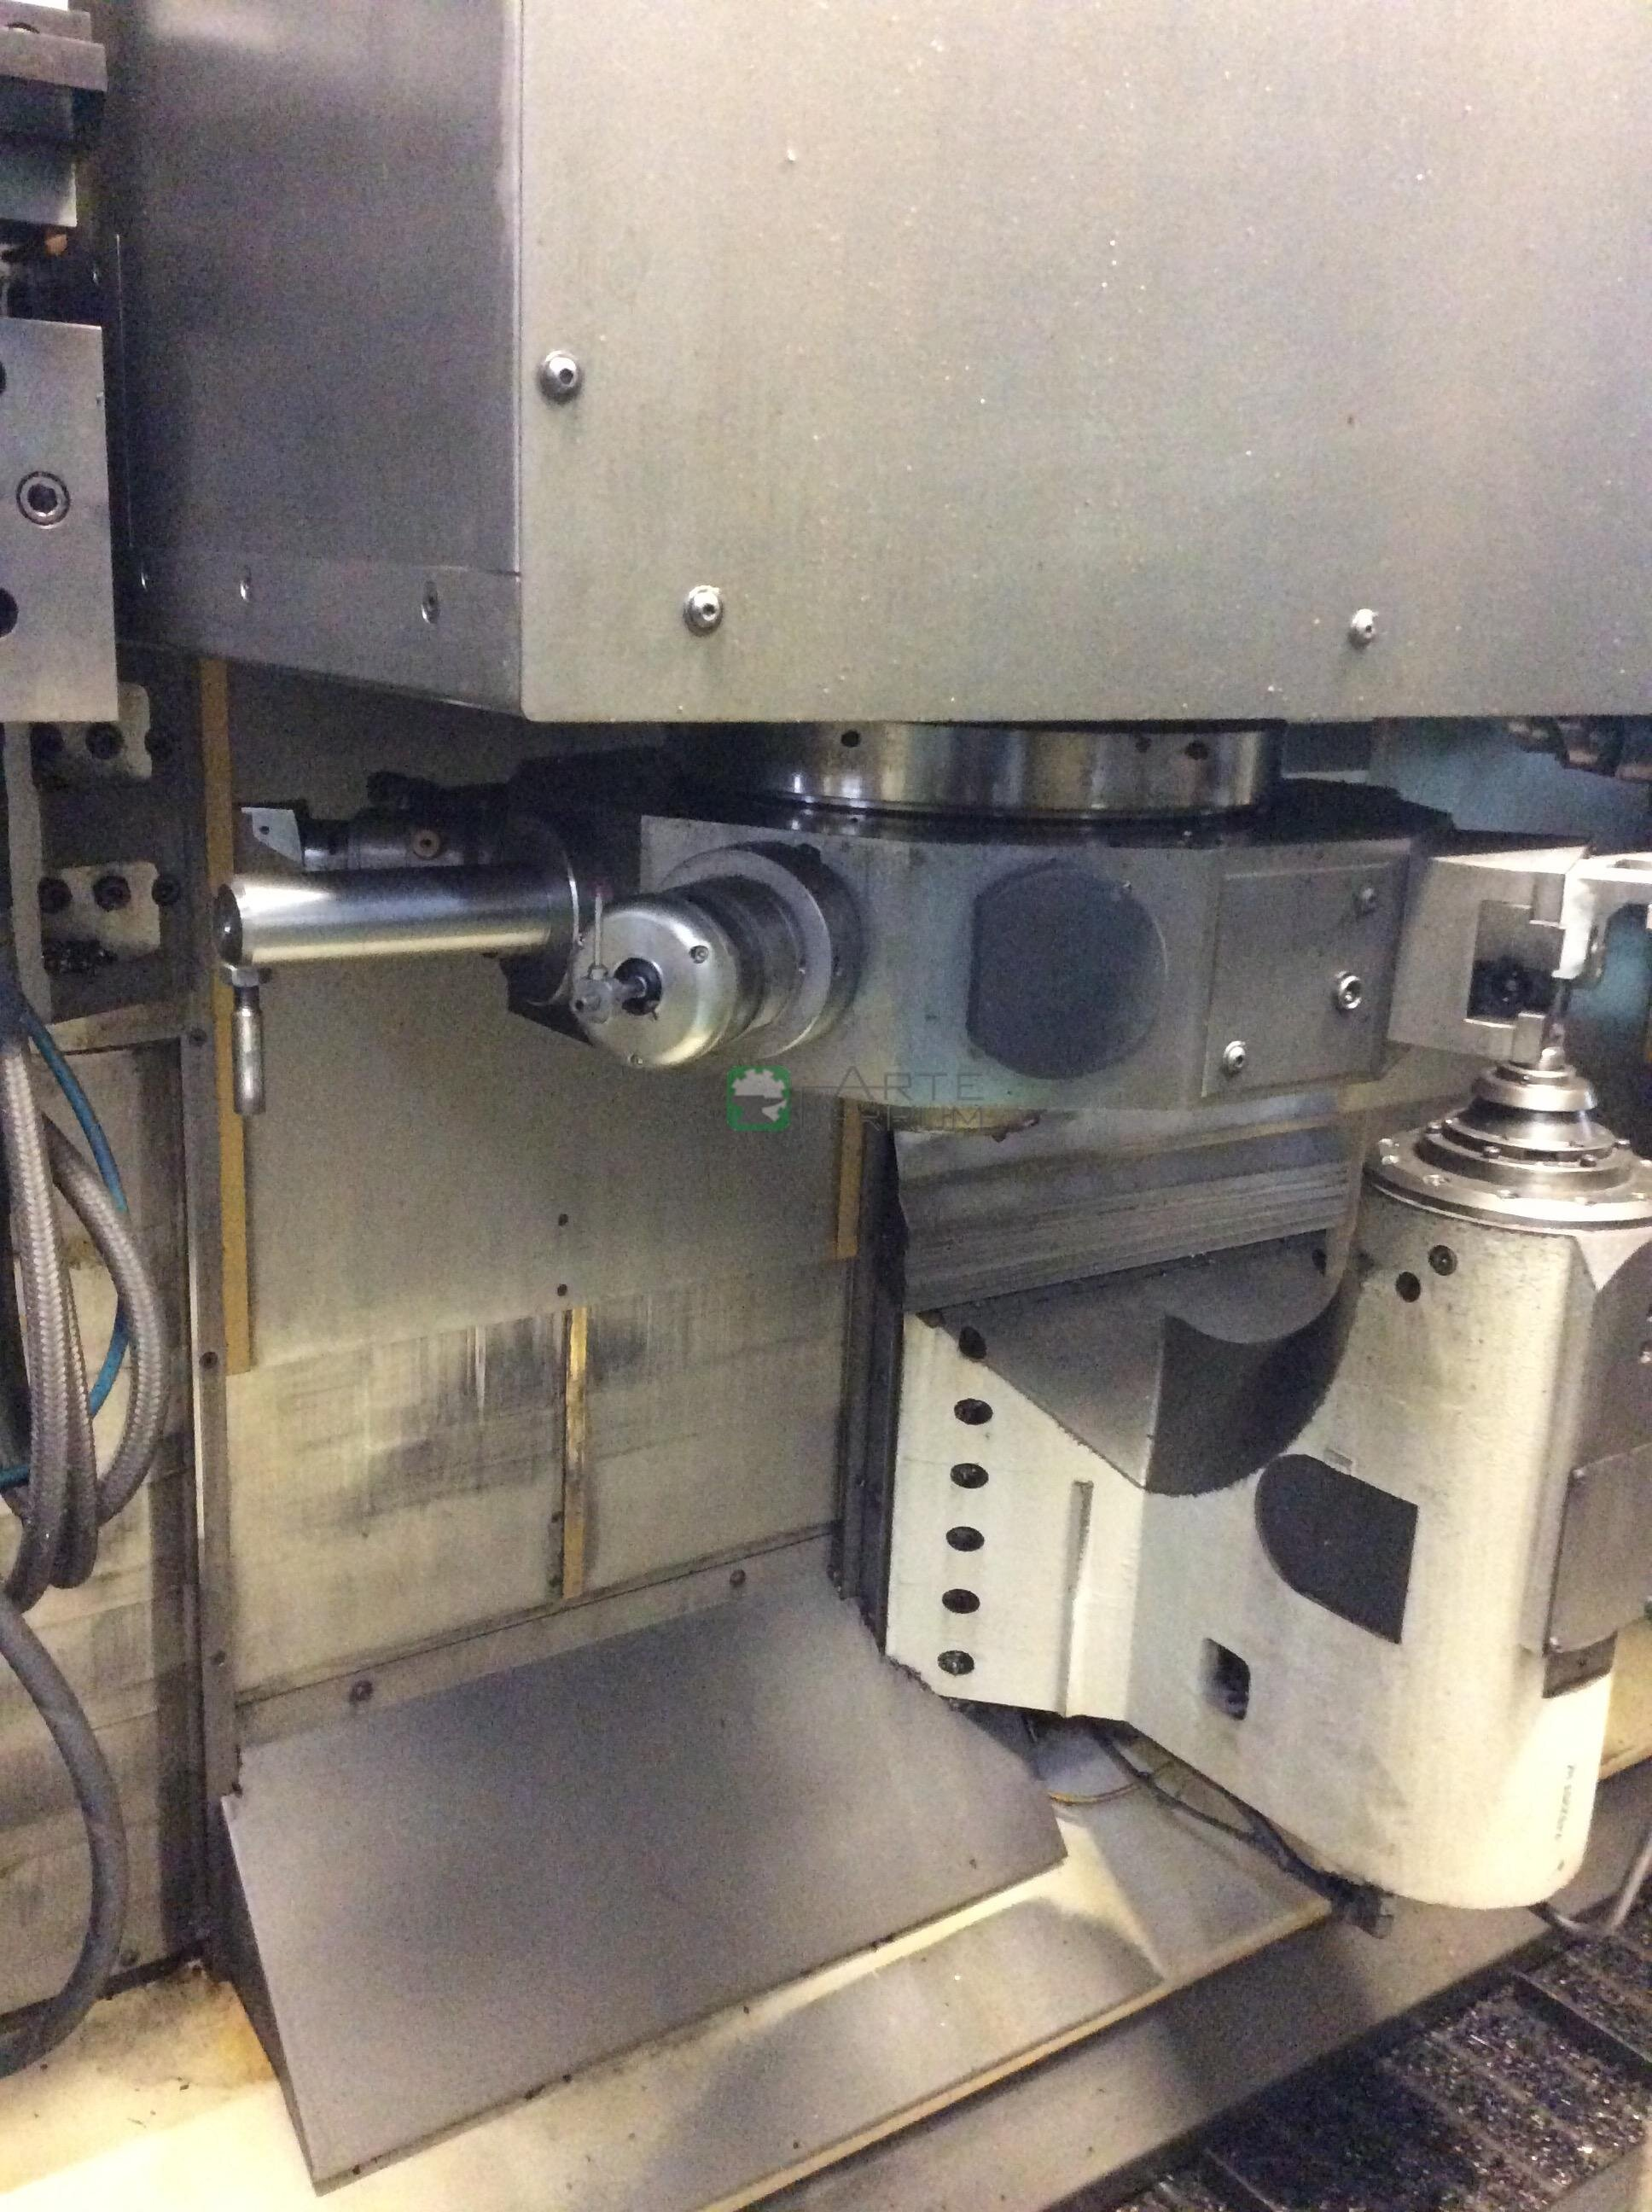 EMAG VTC 250 DUO vertical lathe (3)